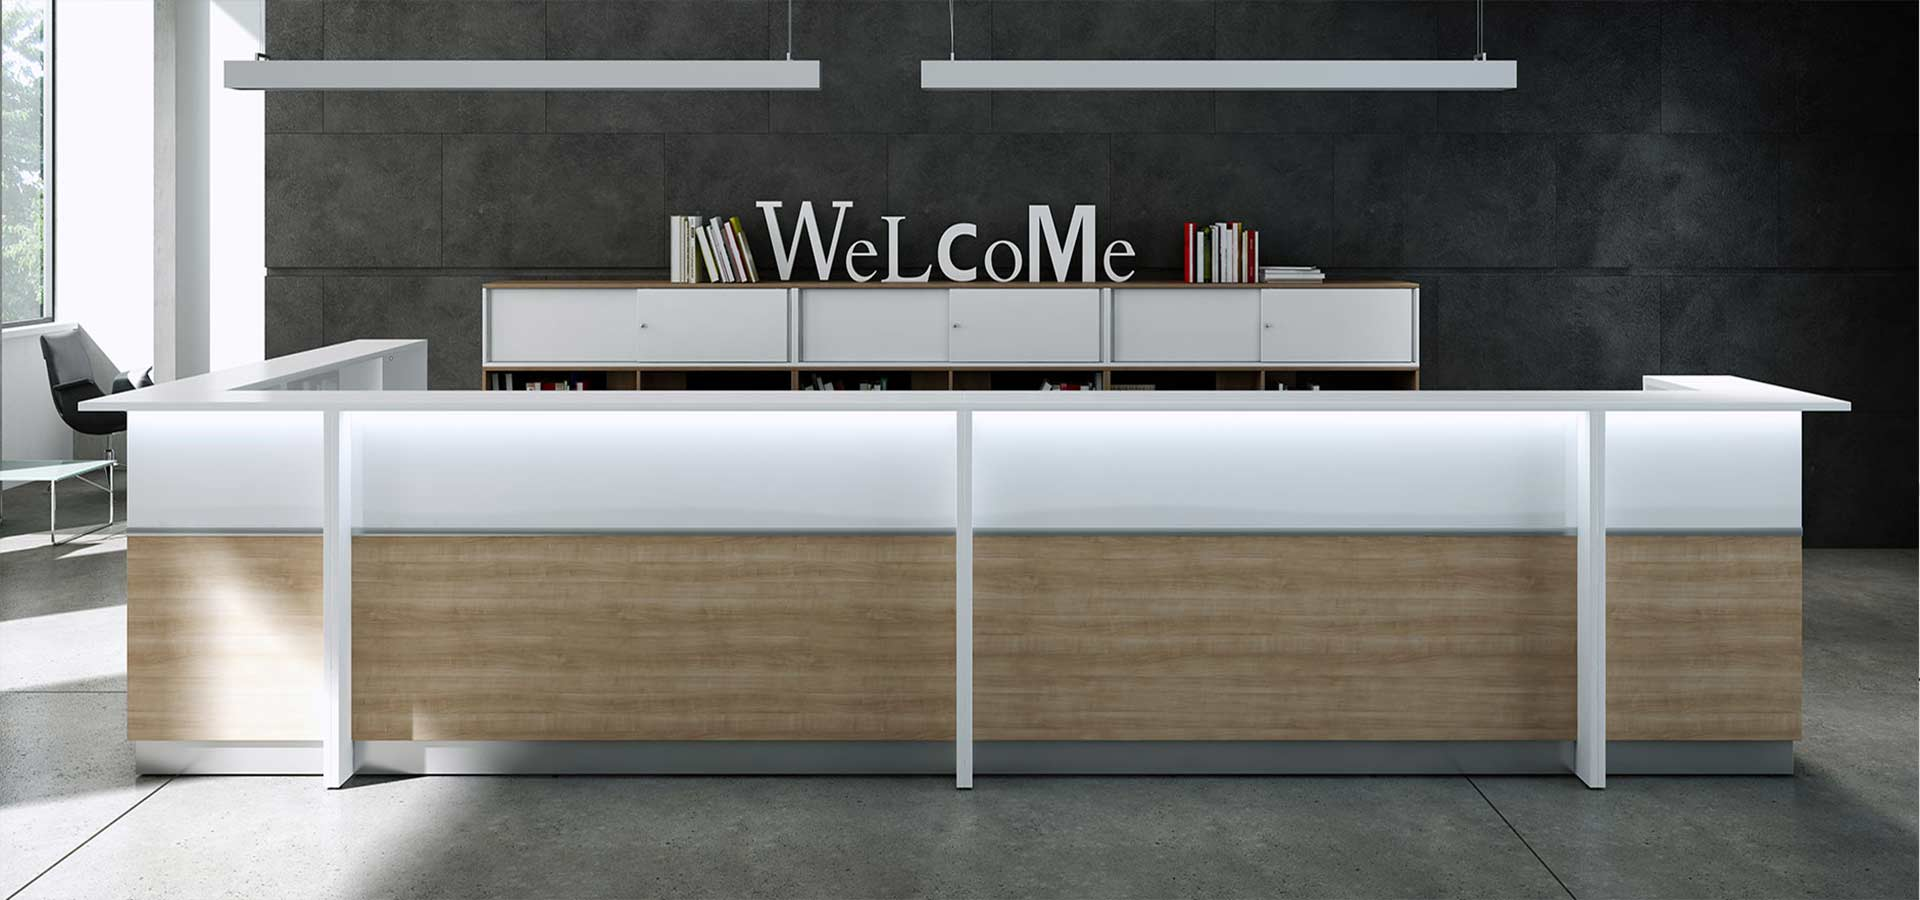 welkome - welcome